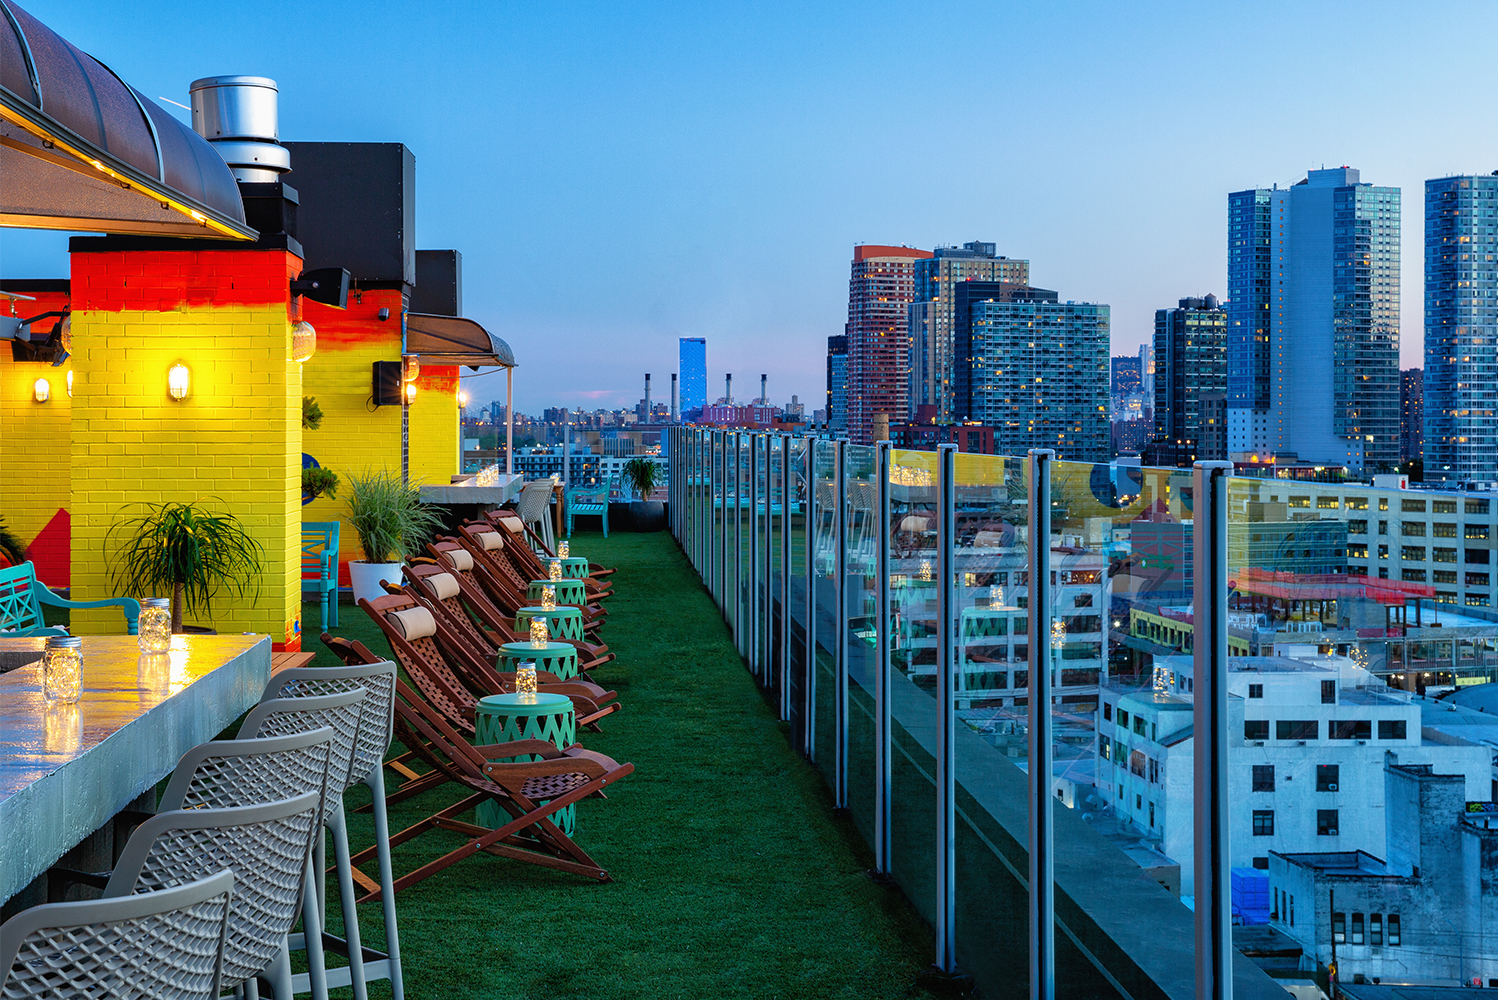 Savanna Rooftop opened as a new open-air rooftop lounge with views of the Manhattan skyline.